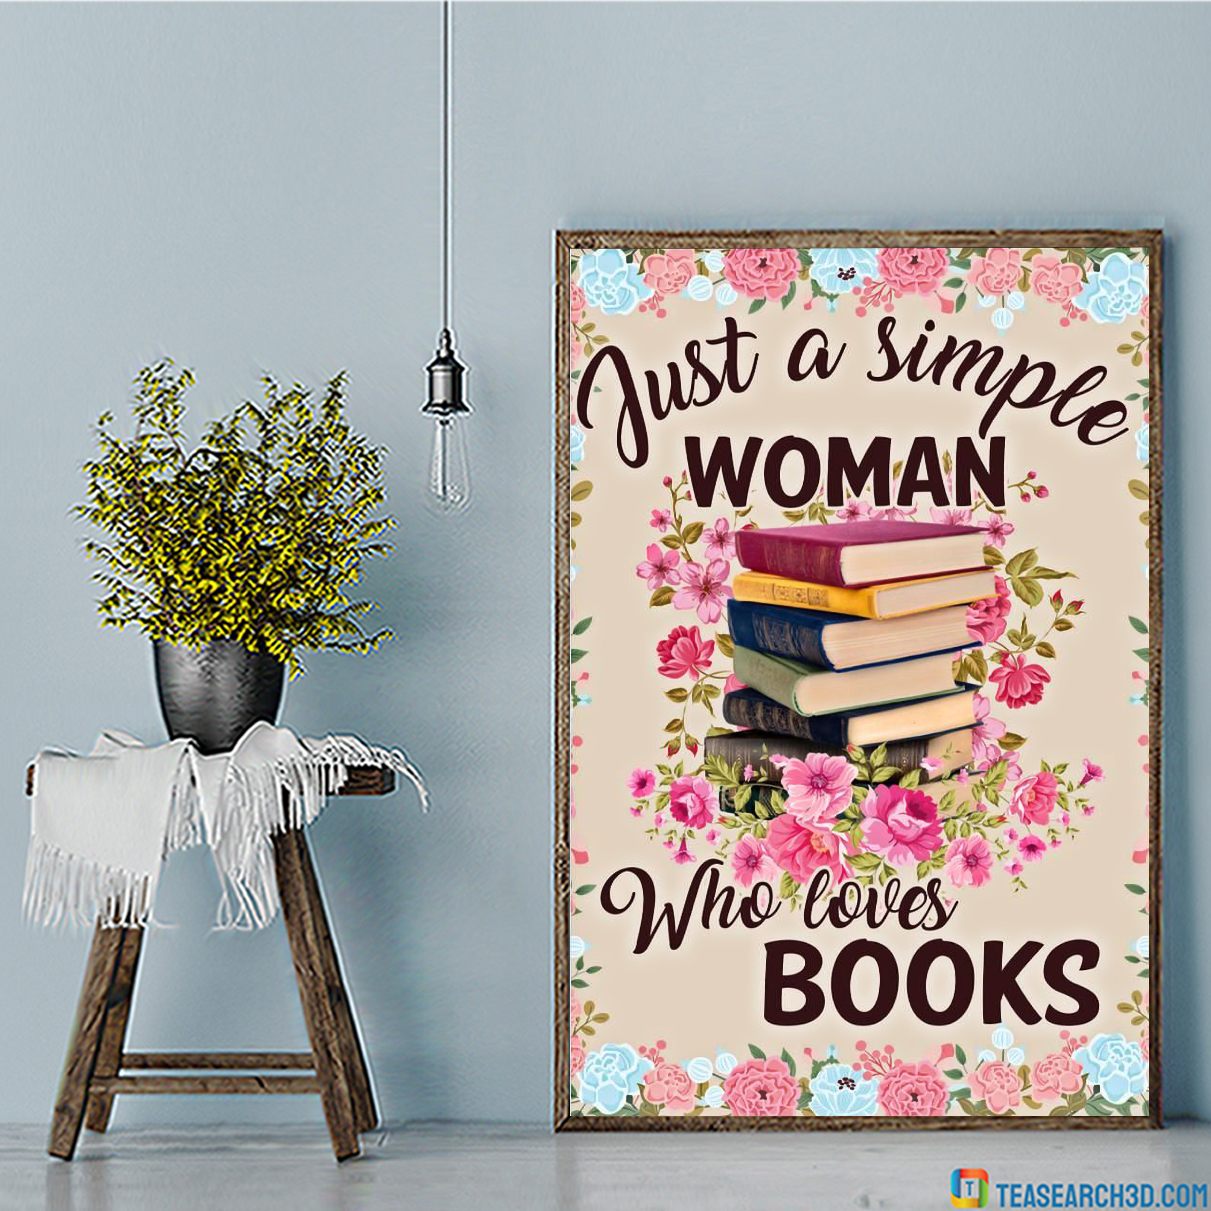 Just a simple woman who loves books poster